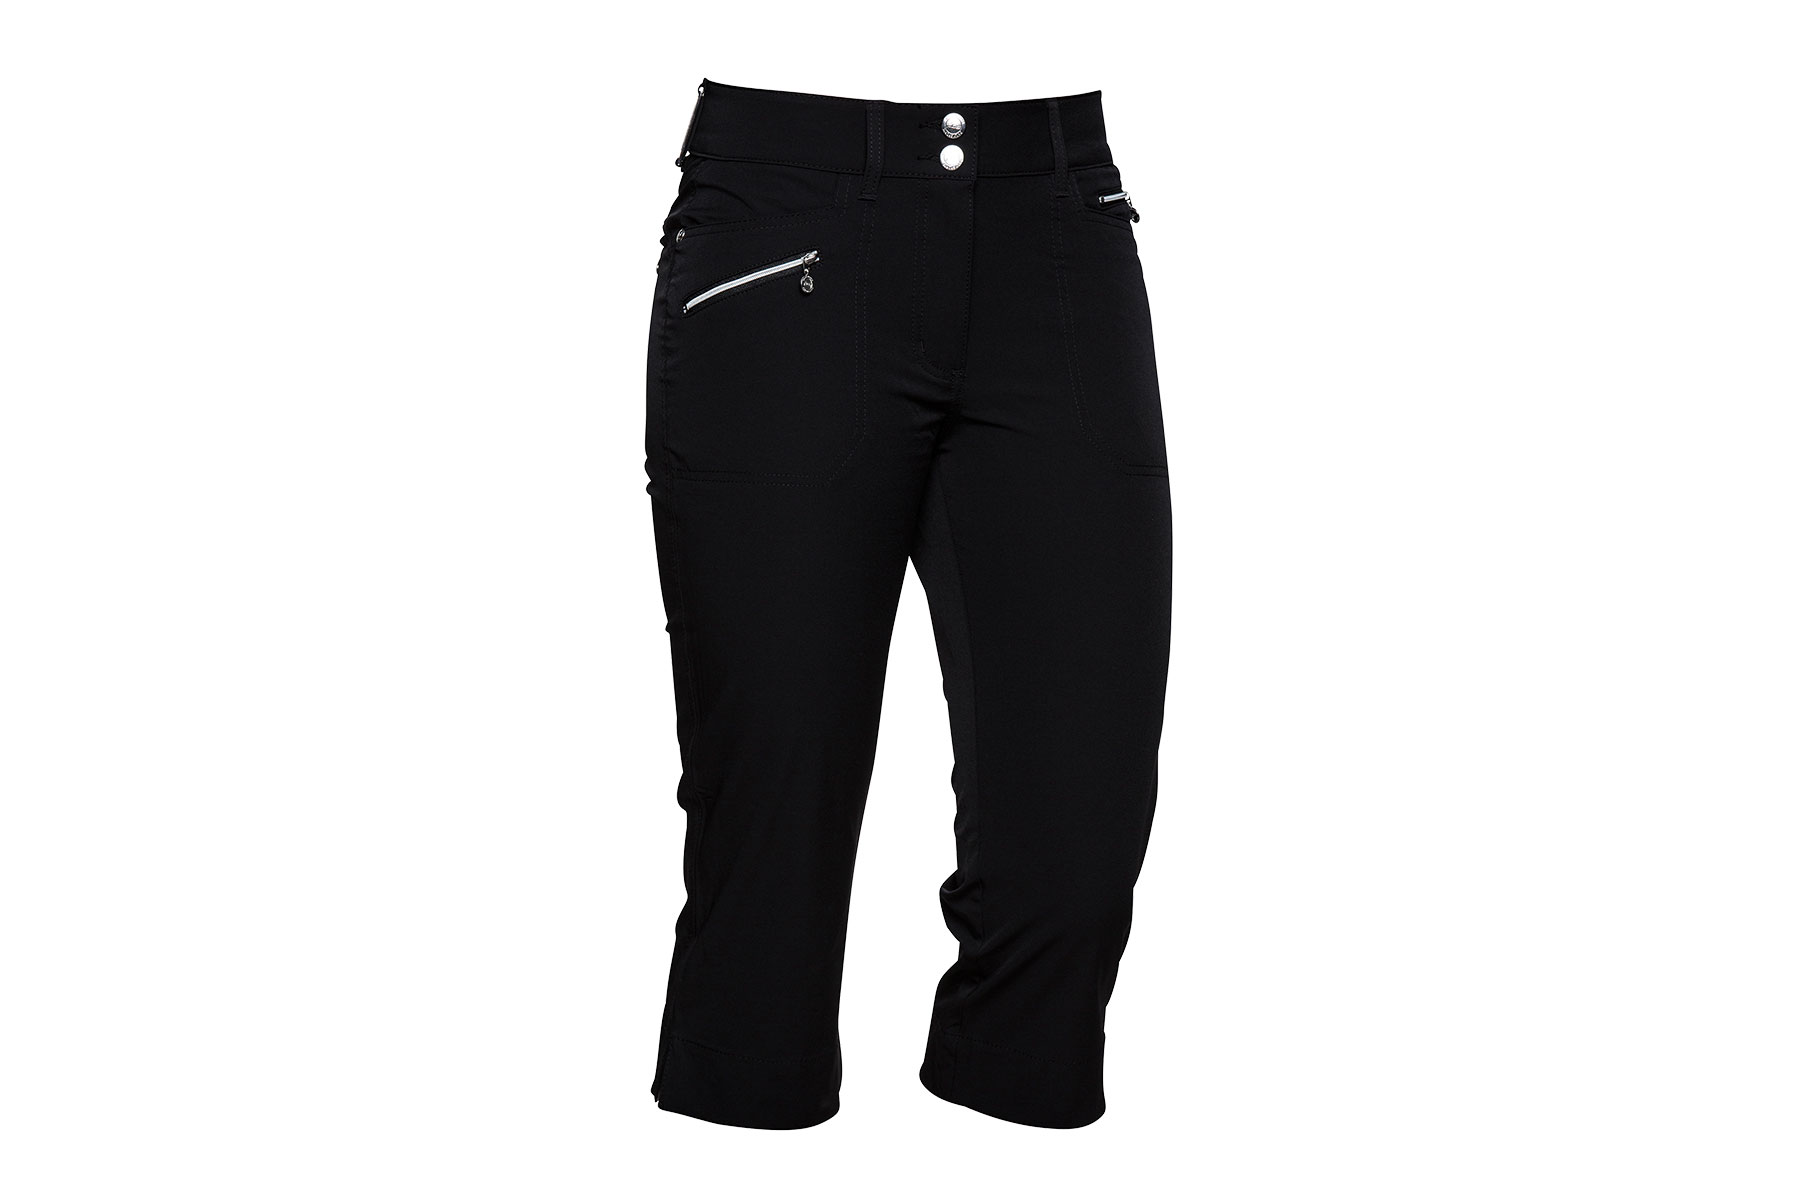 daily sports ladies capri miracle trousers online golf